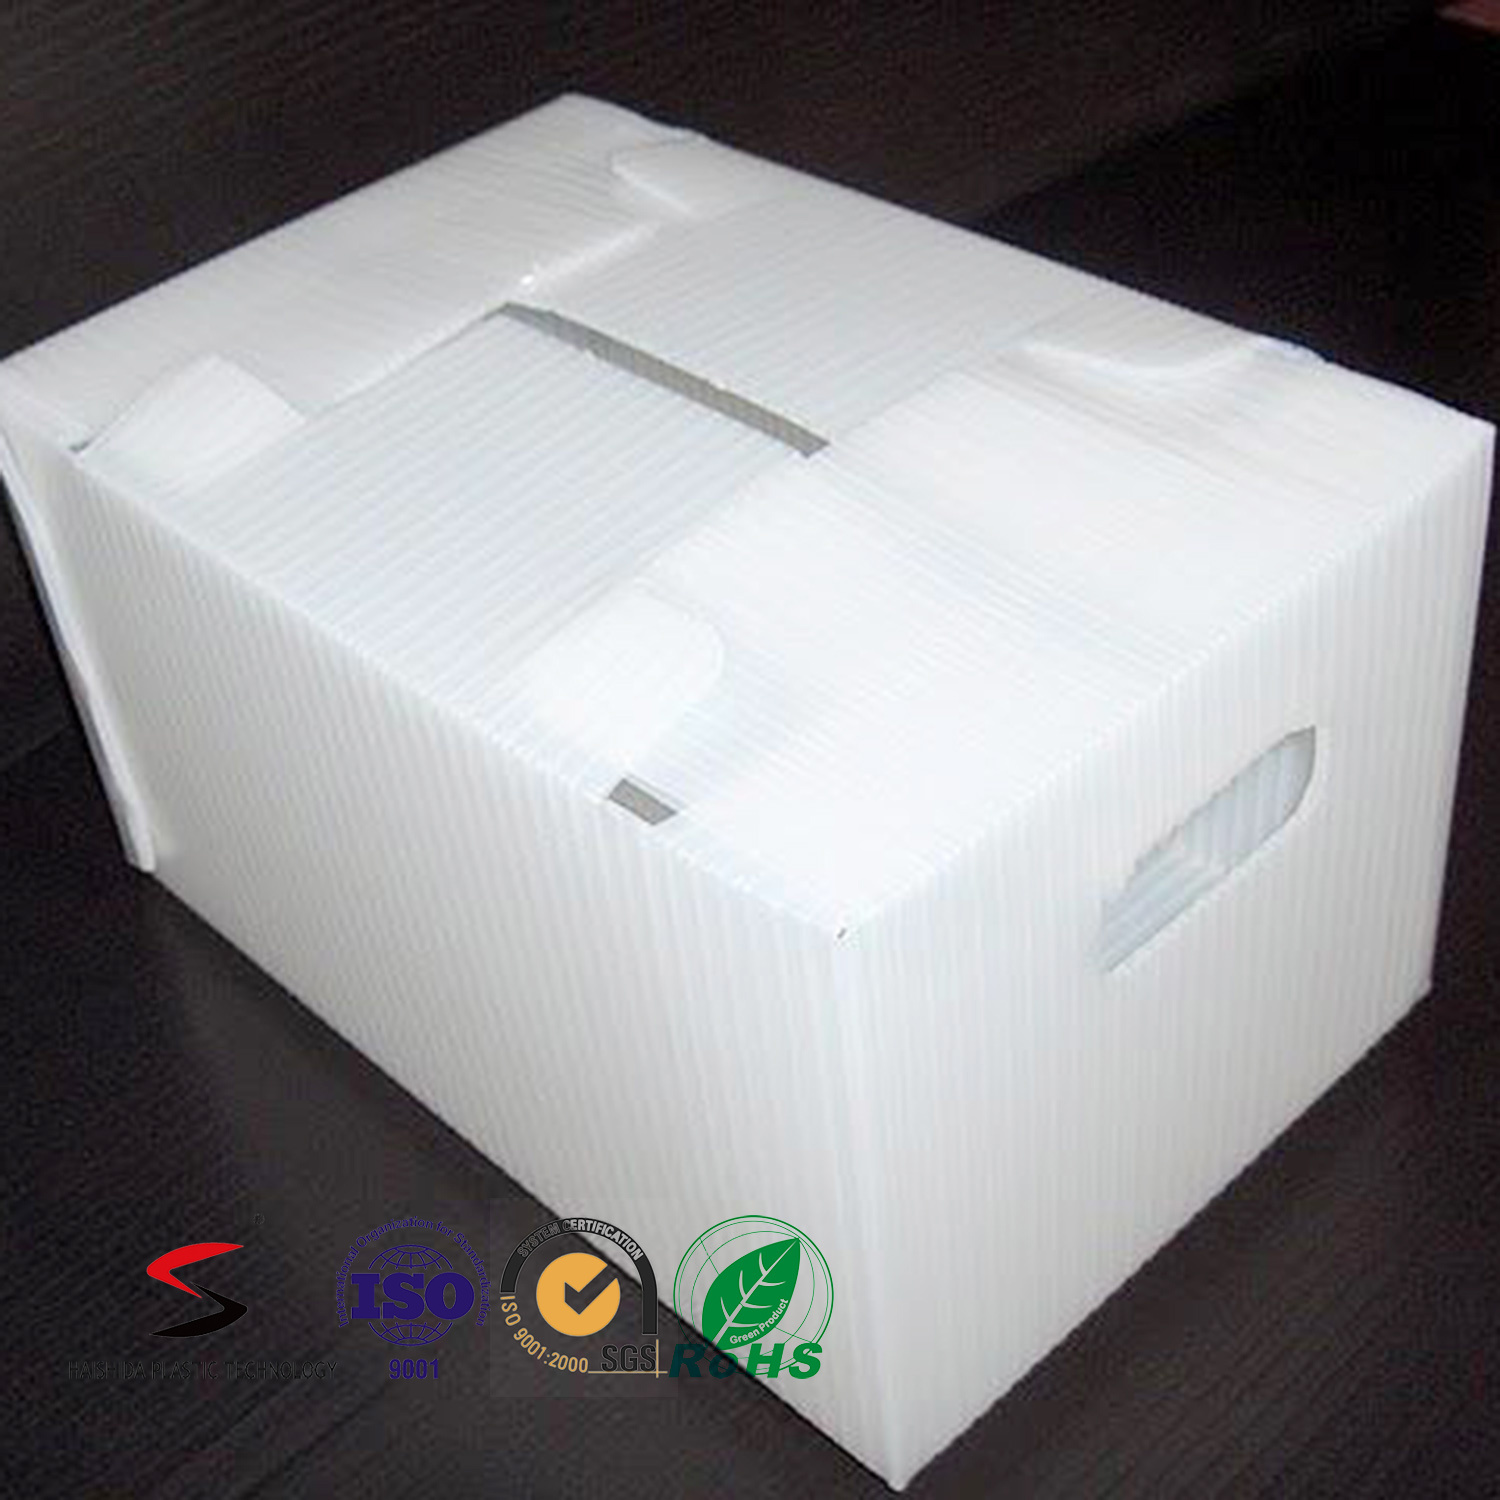 Twinwall PP Box Plastic Carton PP Fruit Box Recyclable Polypropylene Corflute Fruit Box Folding Box